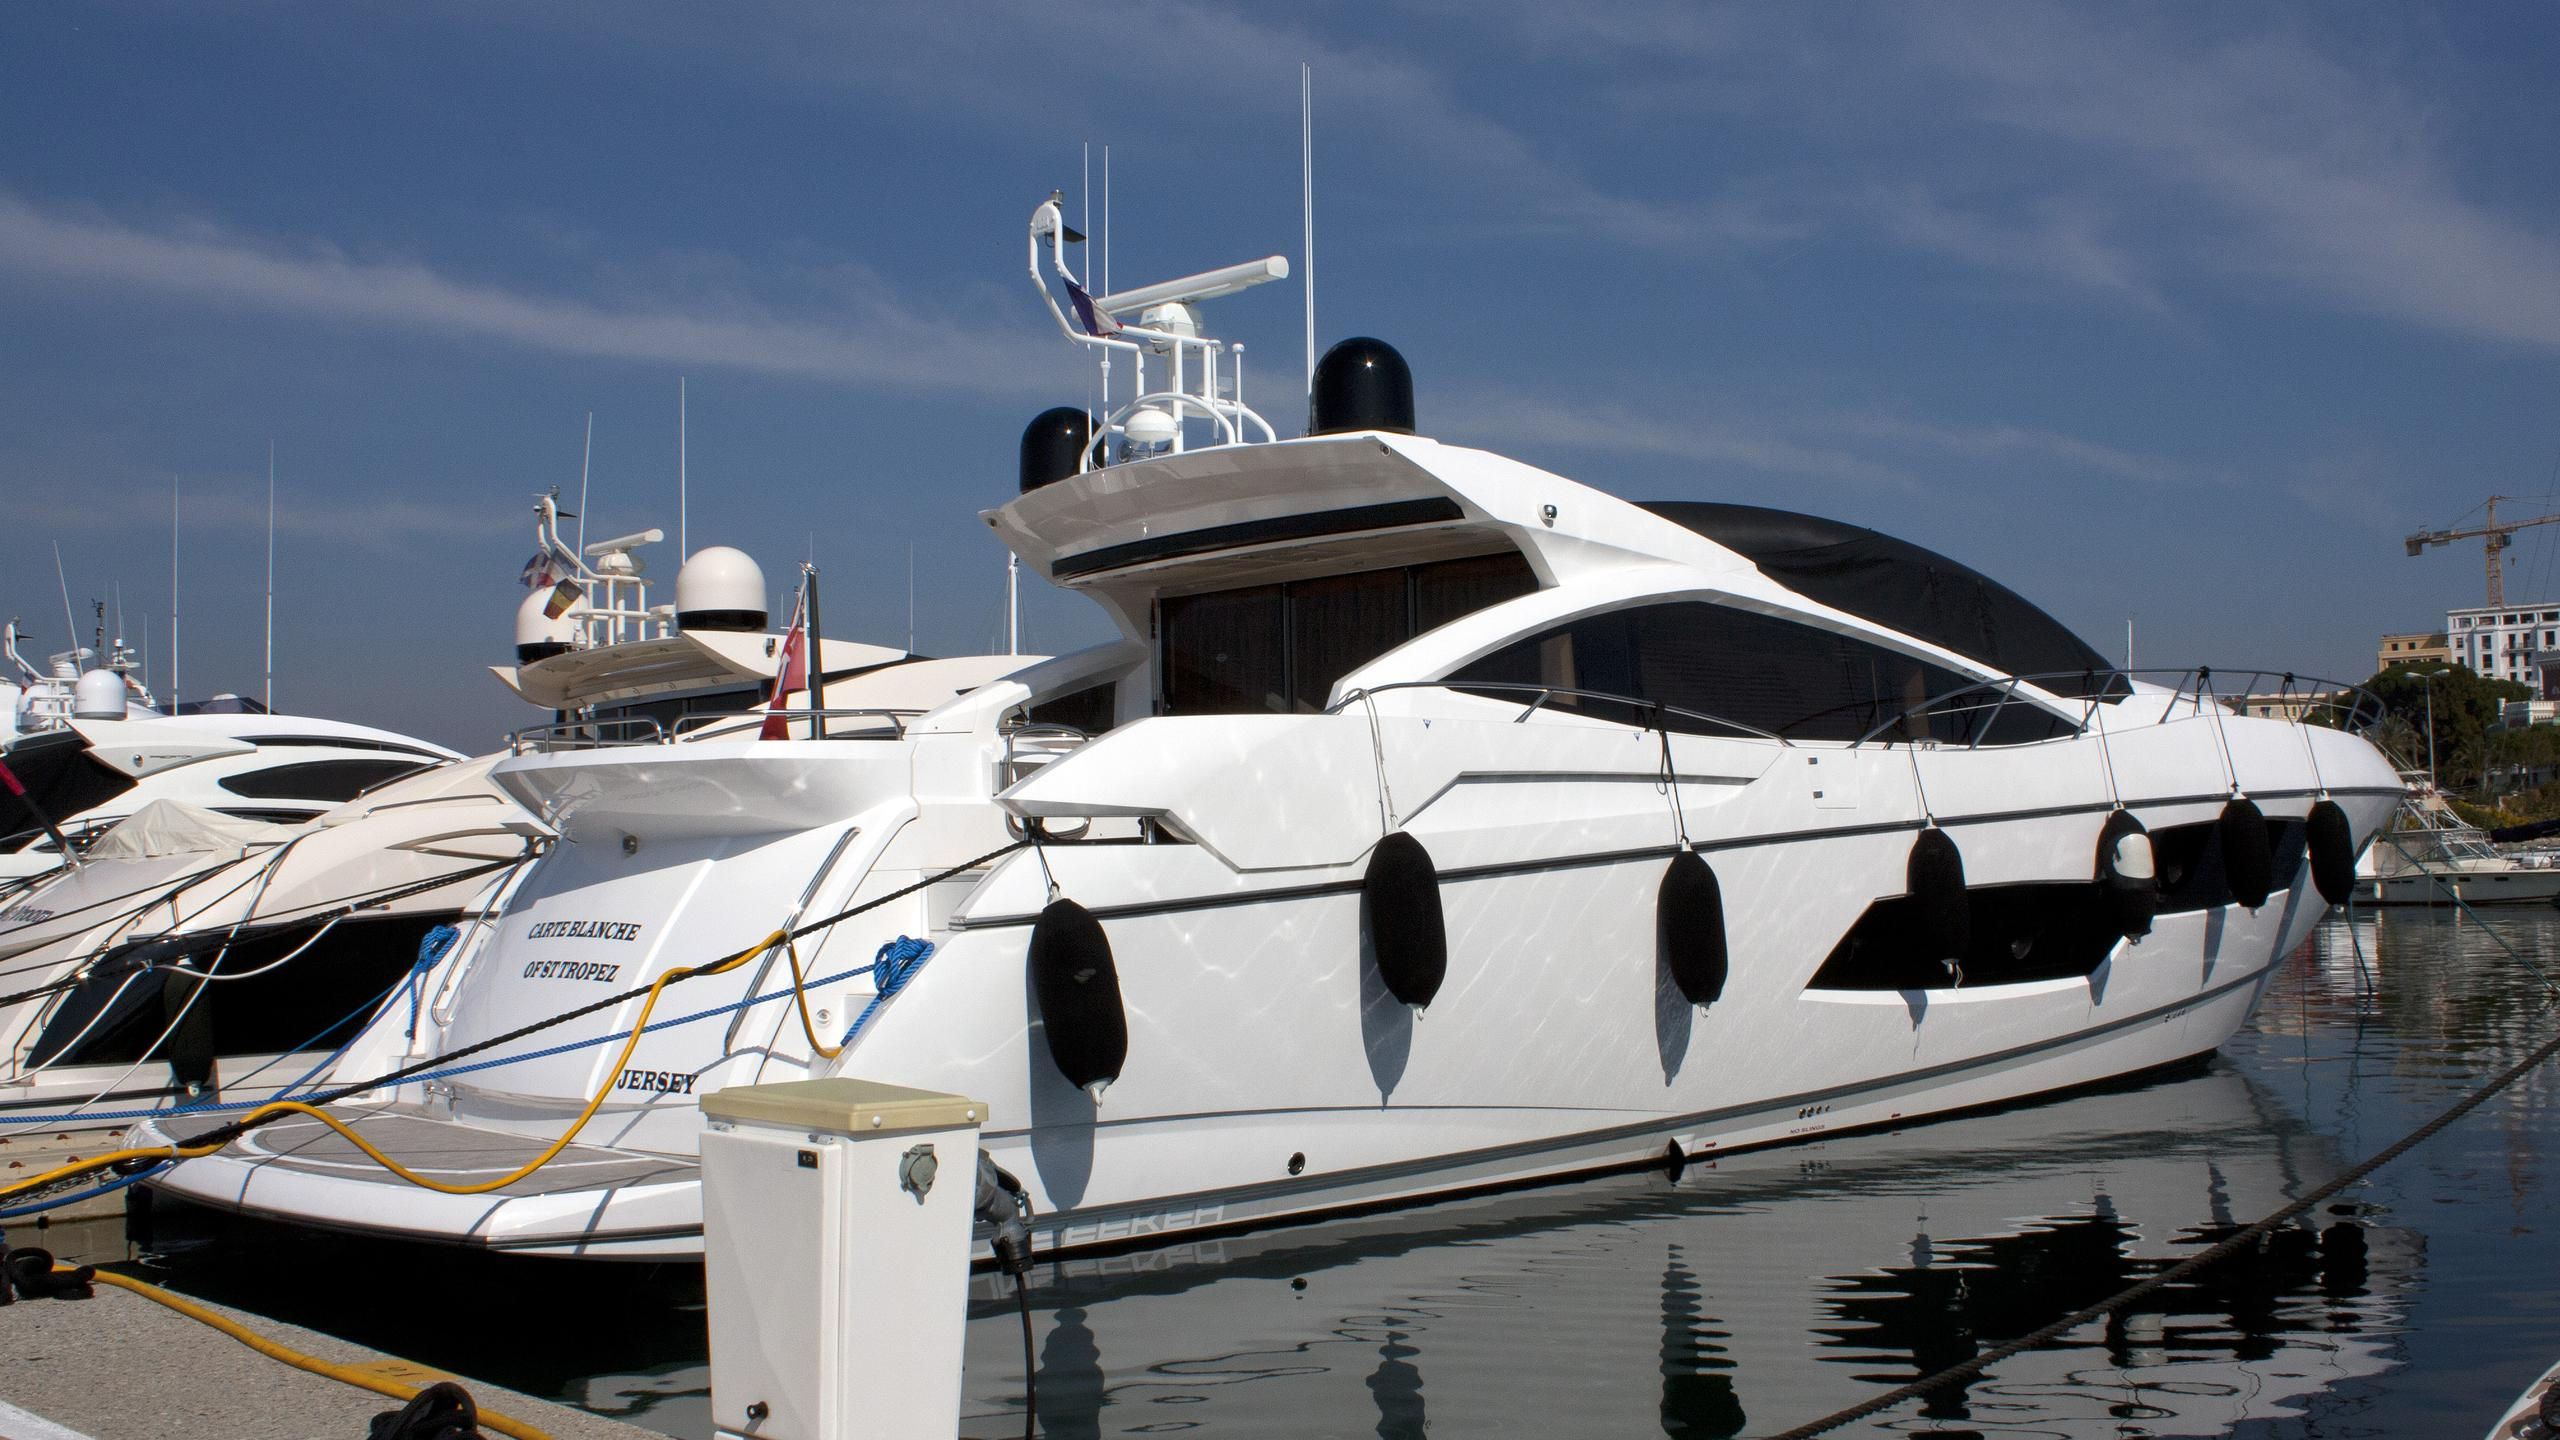 carte-blanche-of-st-tropez-yacht-exterior